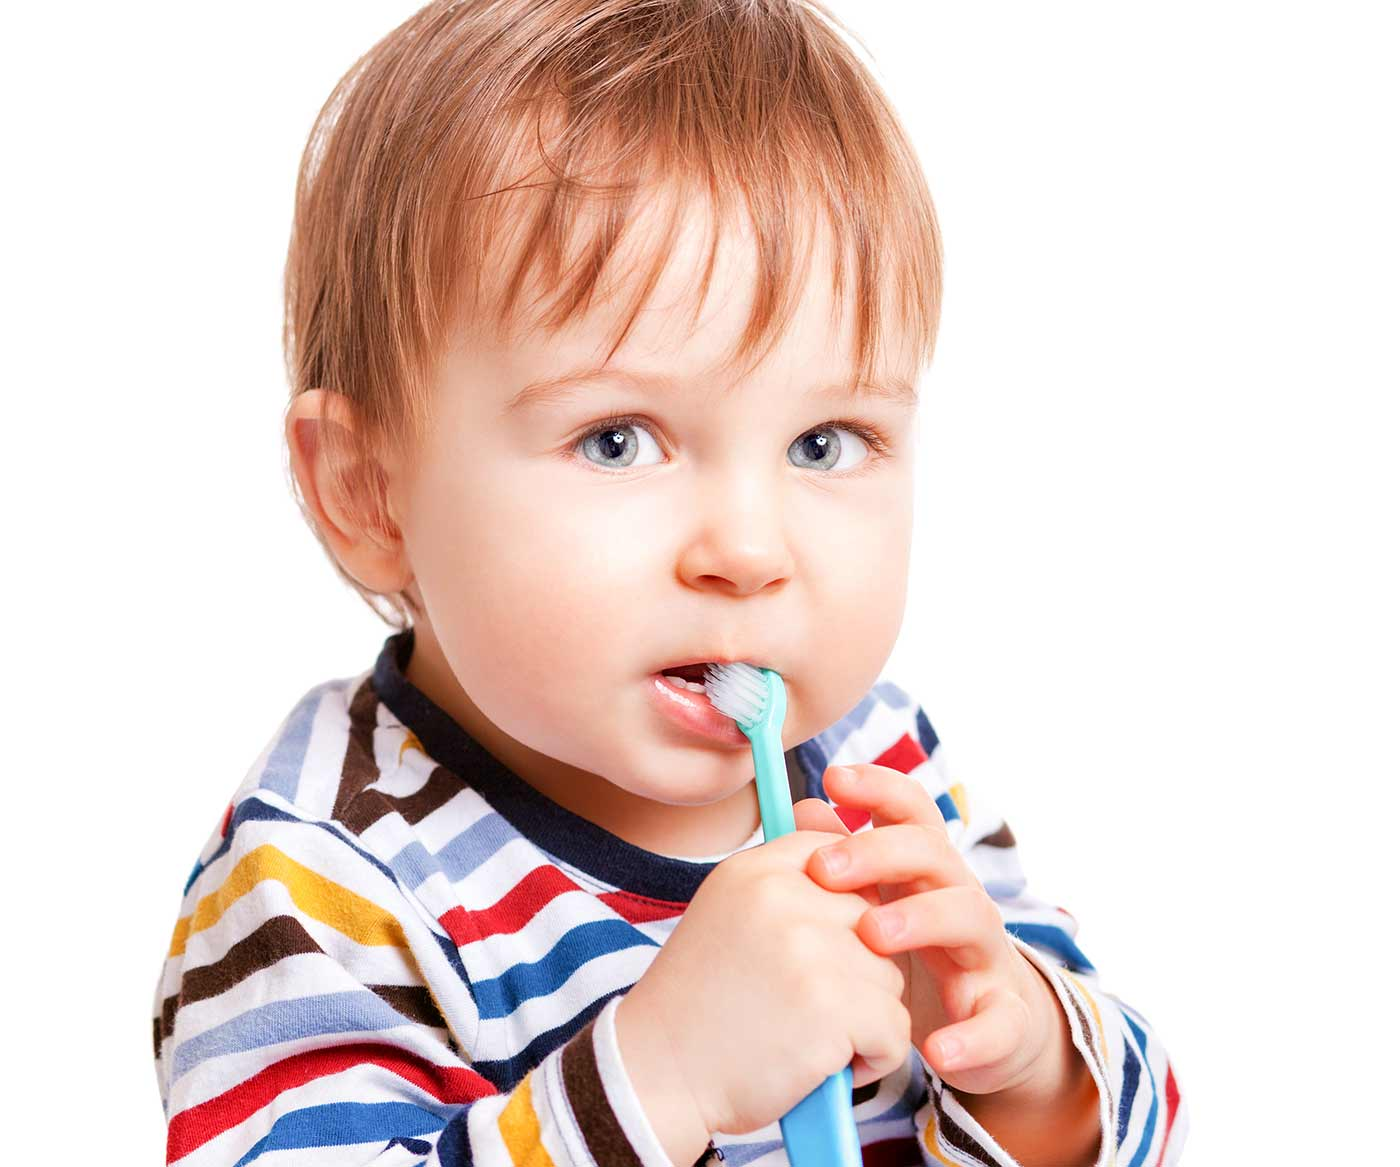 A little toddler brushing his teeth